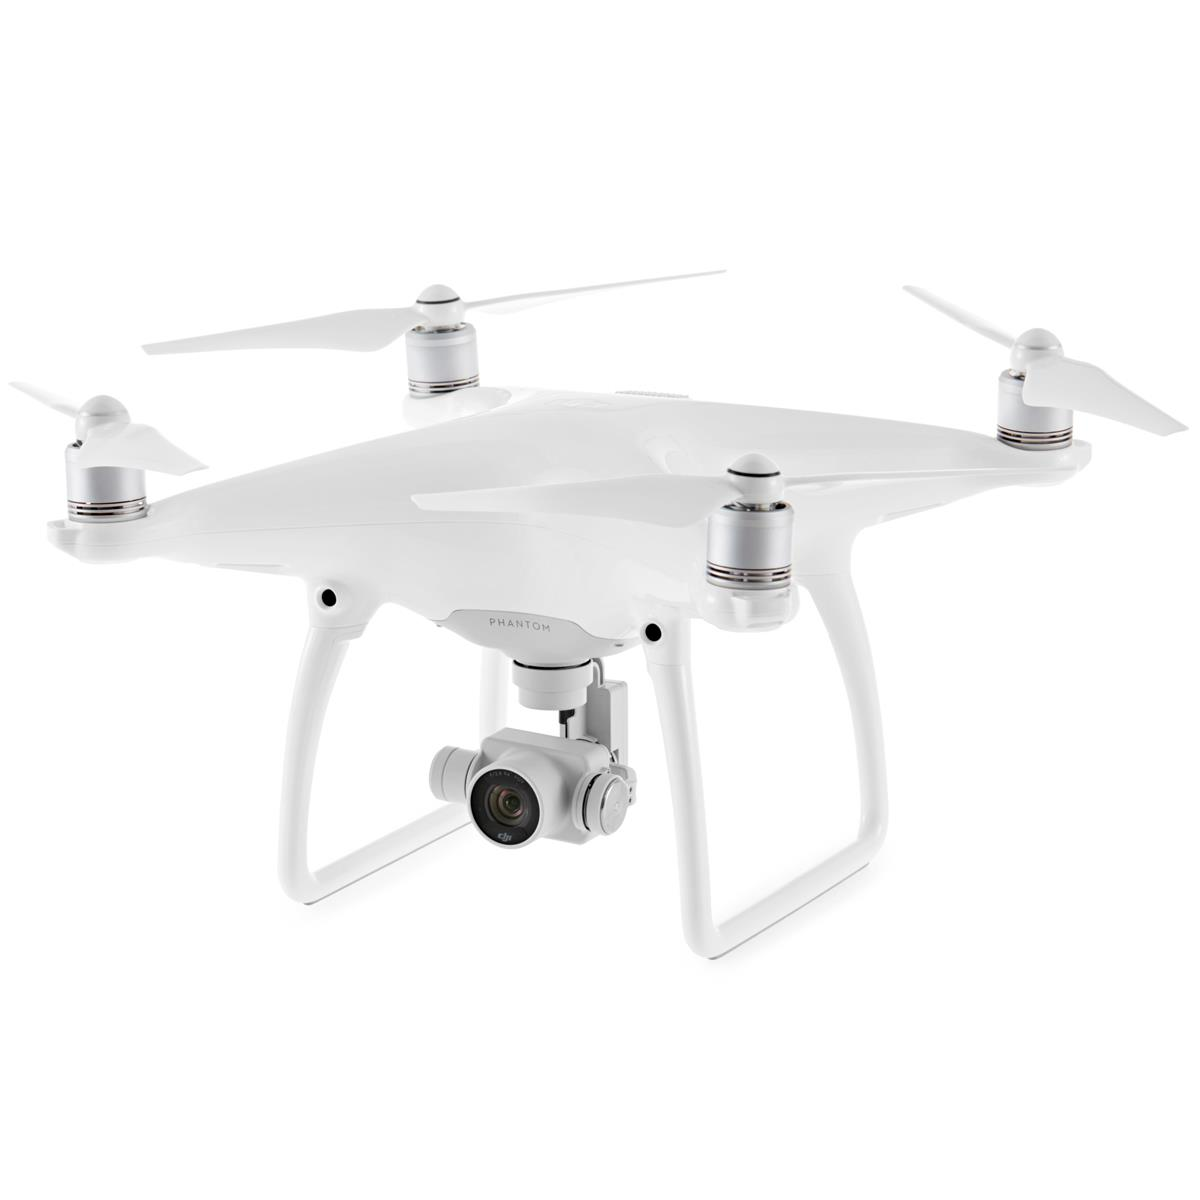 Photography news, adorama deals, The DJI Phantom 4 Quadcopter